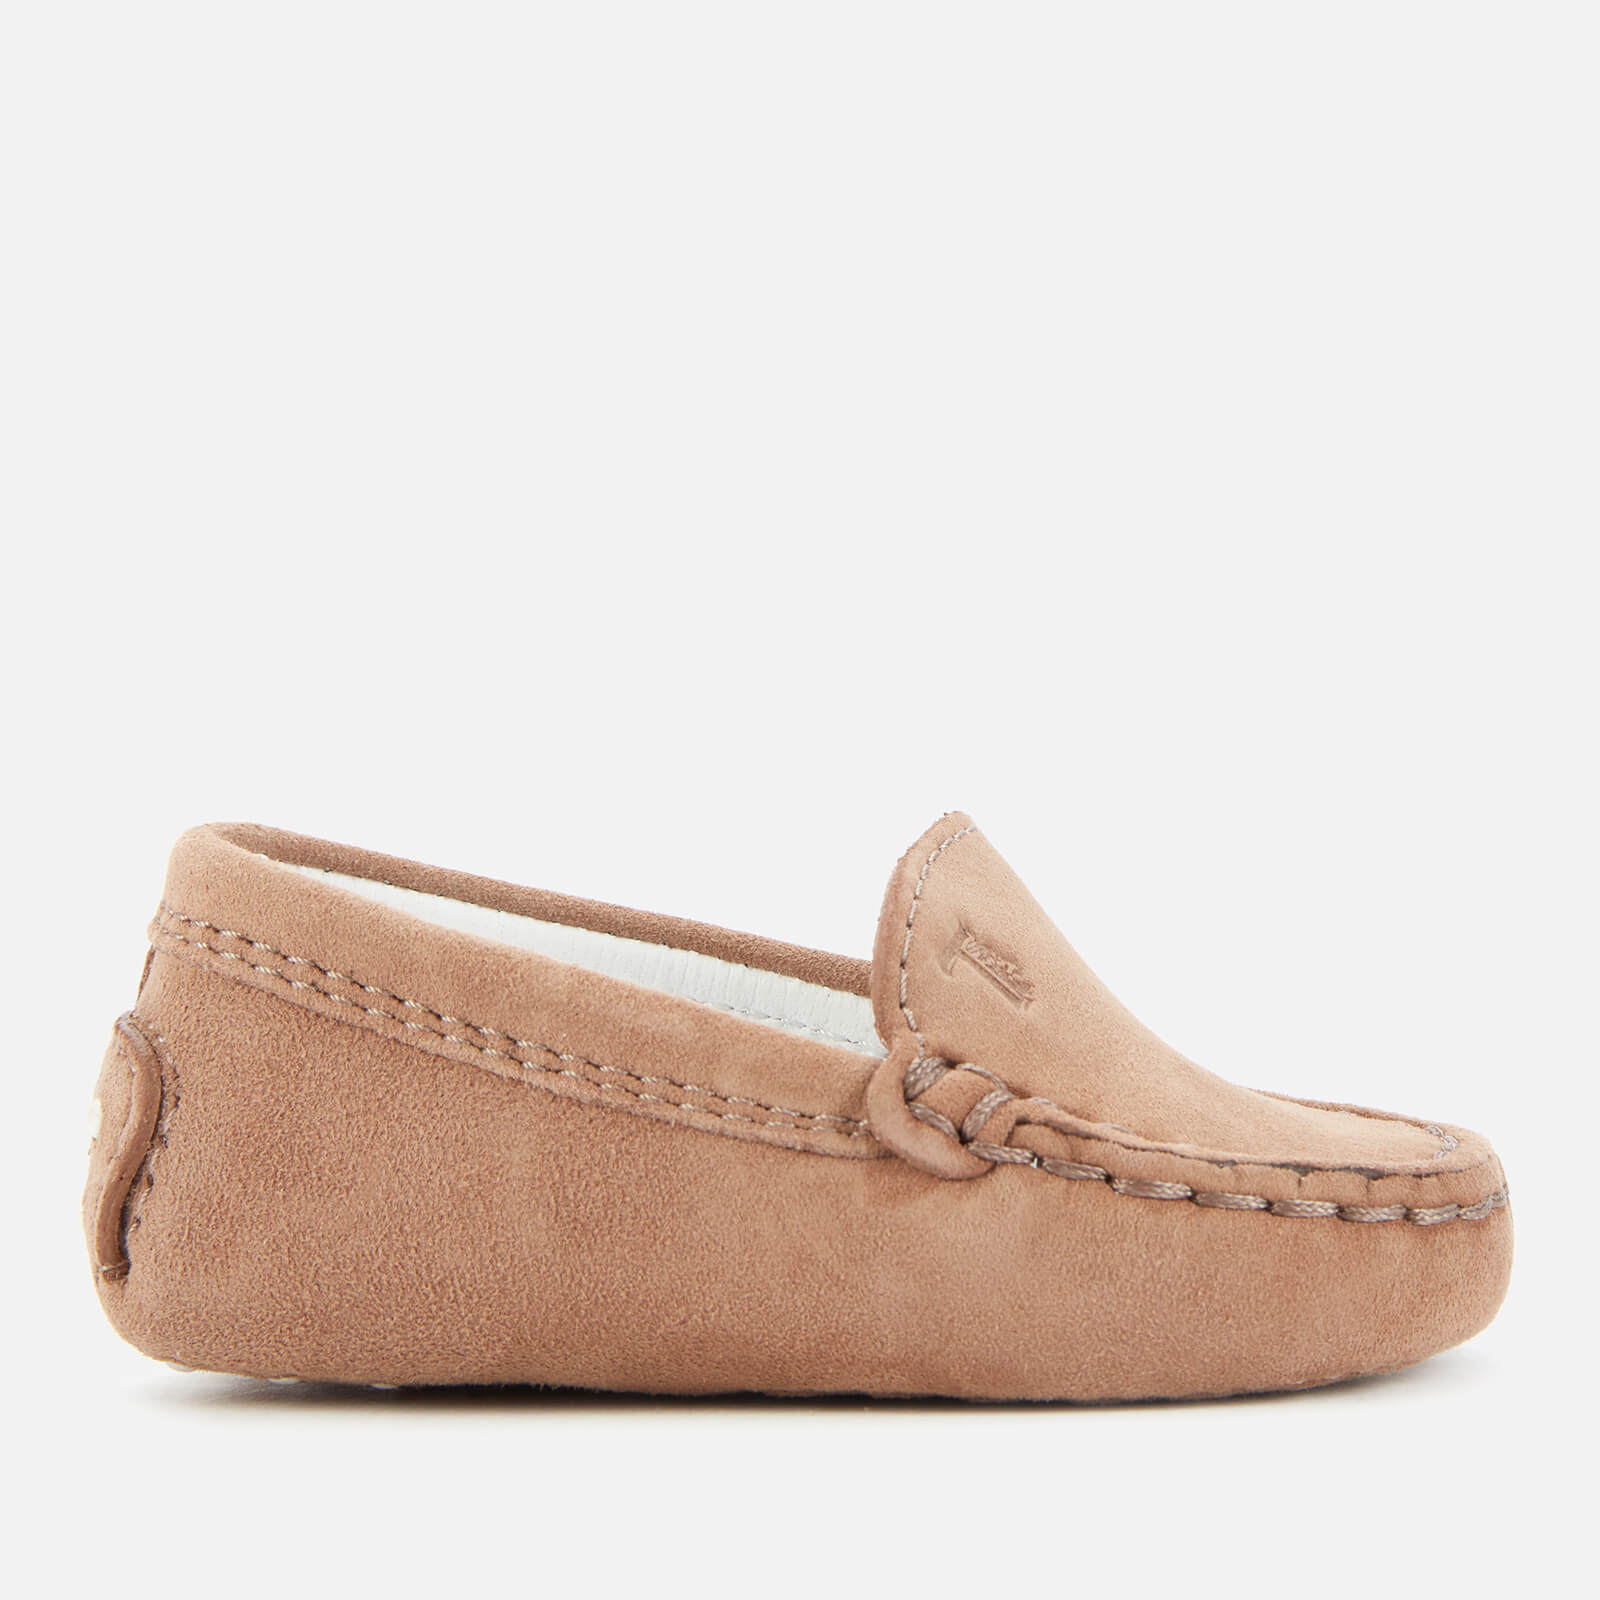 Tod's Babies' Suede Loafers - Beige - UK 0 Infant